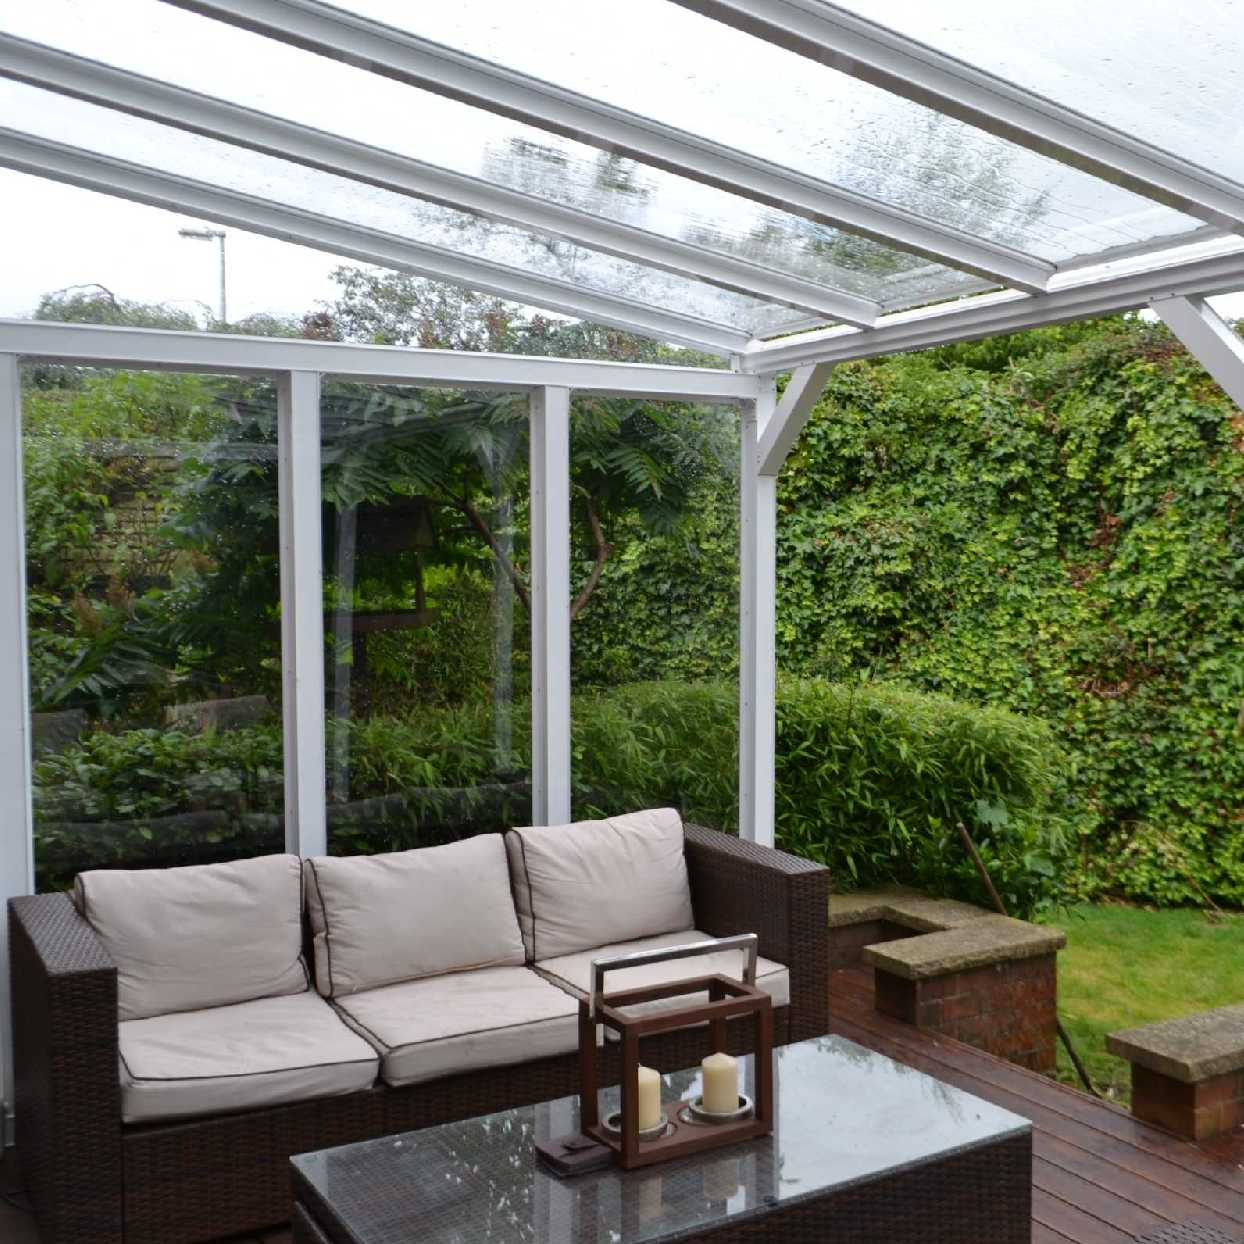 Great selection of Omega Smart White  Lean-To Canopy with 16mm Polycarbonate Glazing - 3.1m (W) x 1.5m (P), (2) Supporting Posts